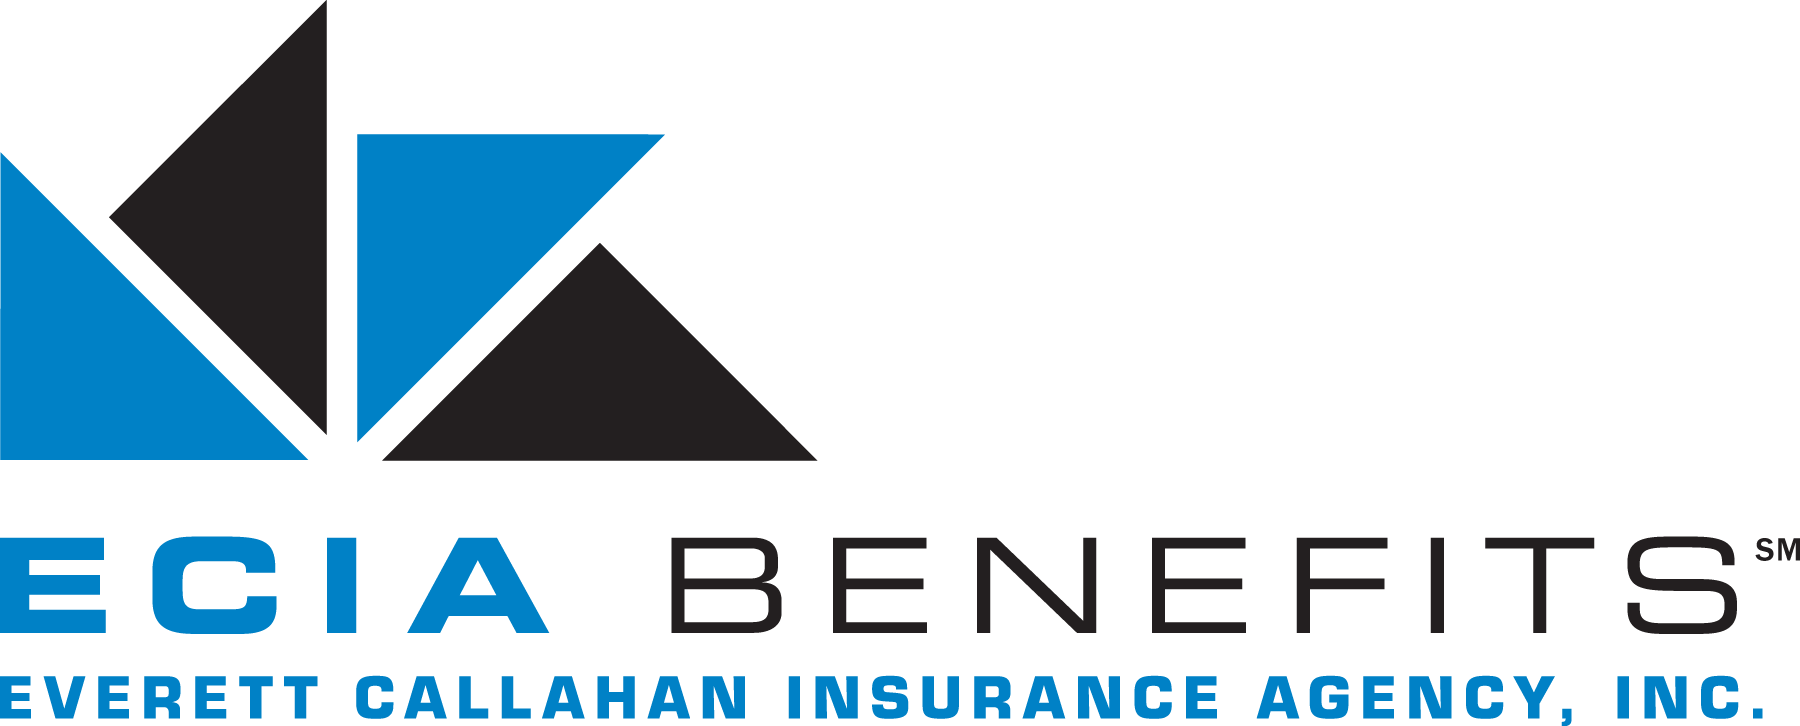 Everett Callahan Insurance Agency Inc - The employee benefits broker and group health insurance advisor in Santa Ana